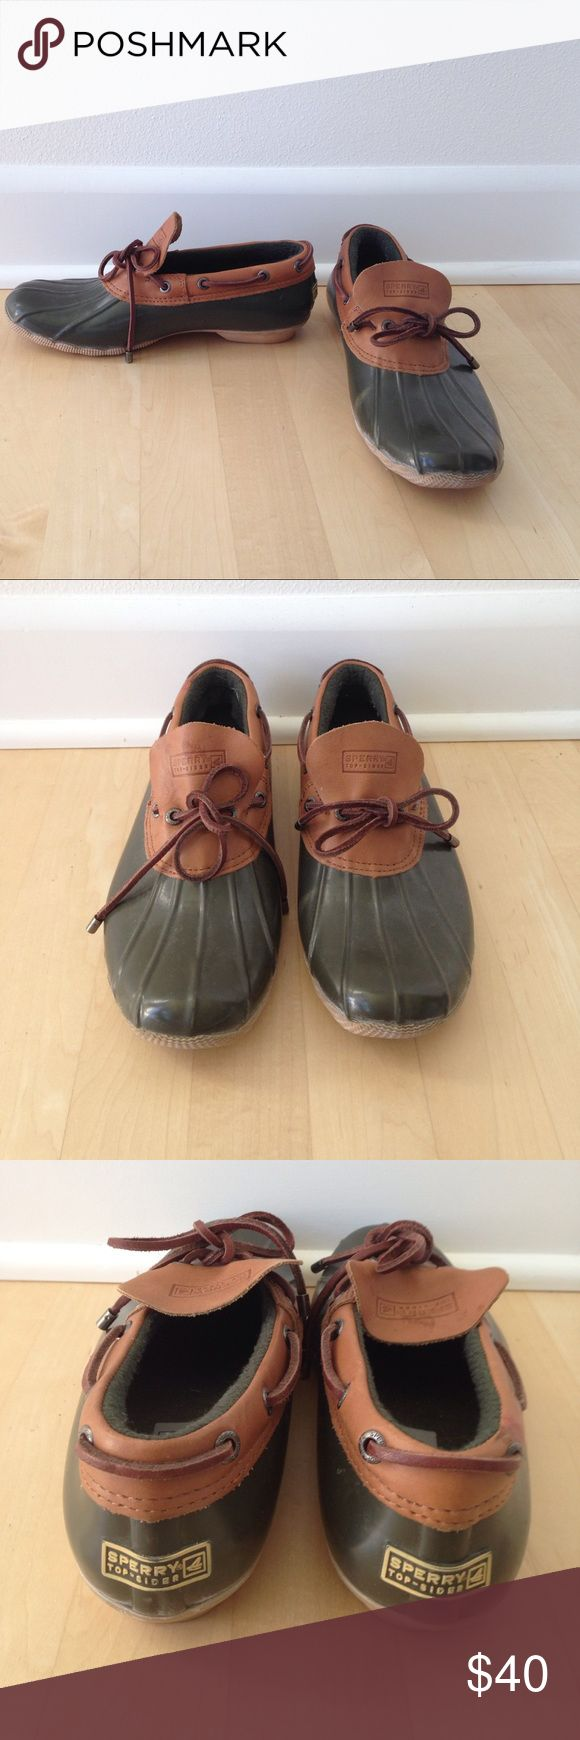 SPERRY TOP-SIDER  DUCK SHOES FOR J. CREW Sperry Top-Sider green and brown rubber duck shoes for J. Crew.  Women's size 8.  In great condition. j crew Shoes Winter & Rain Boots